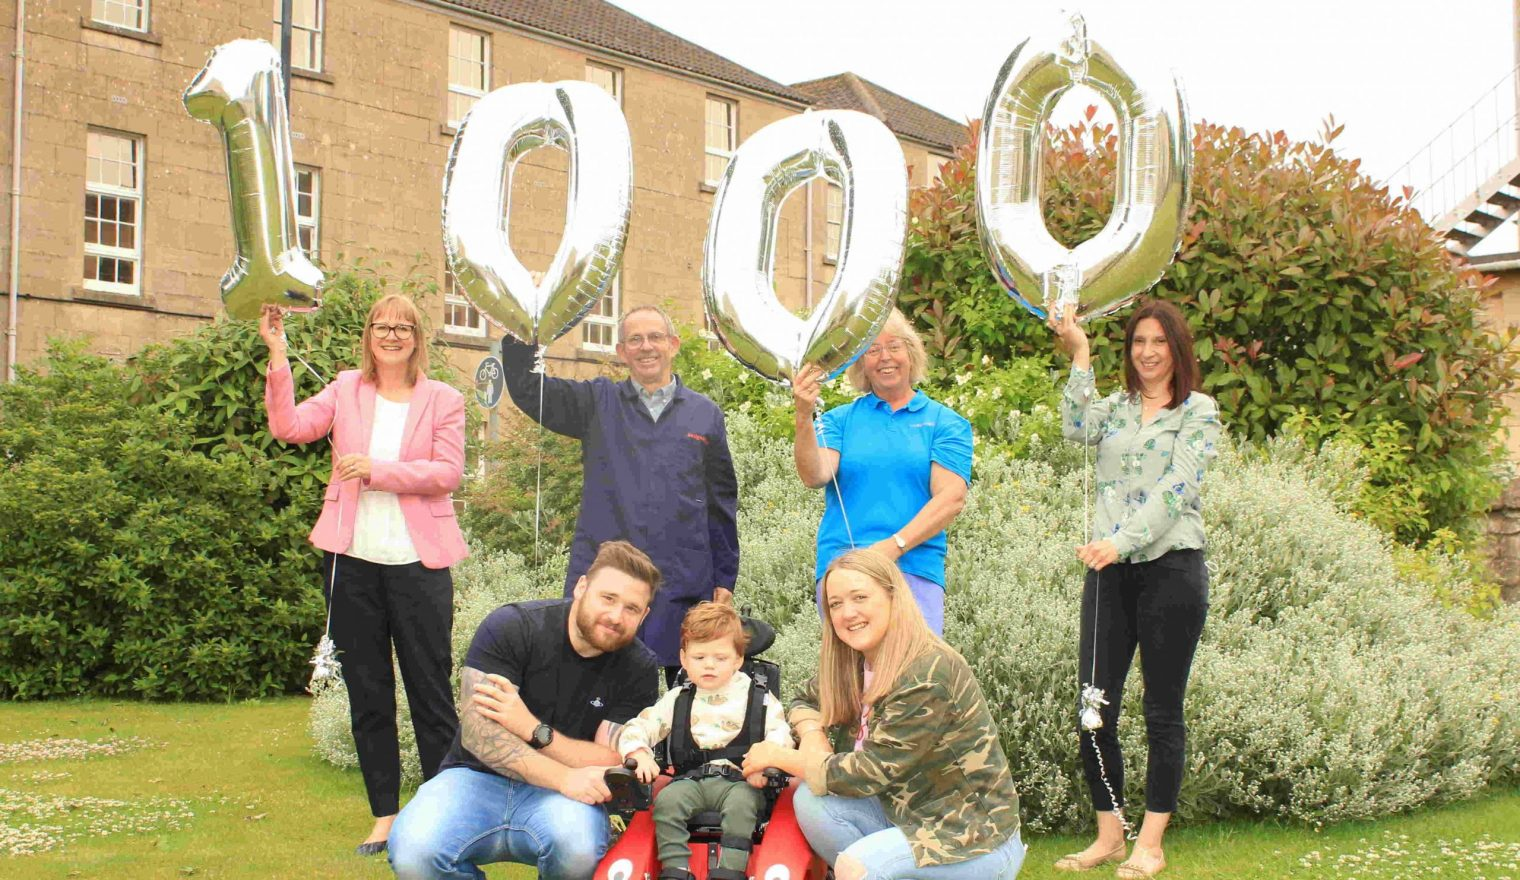 This image shows staff members from Designability along with Parker and his family at the collection of the Wizzybug